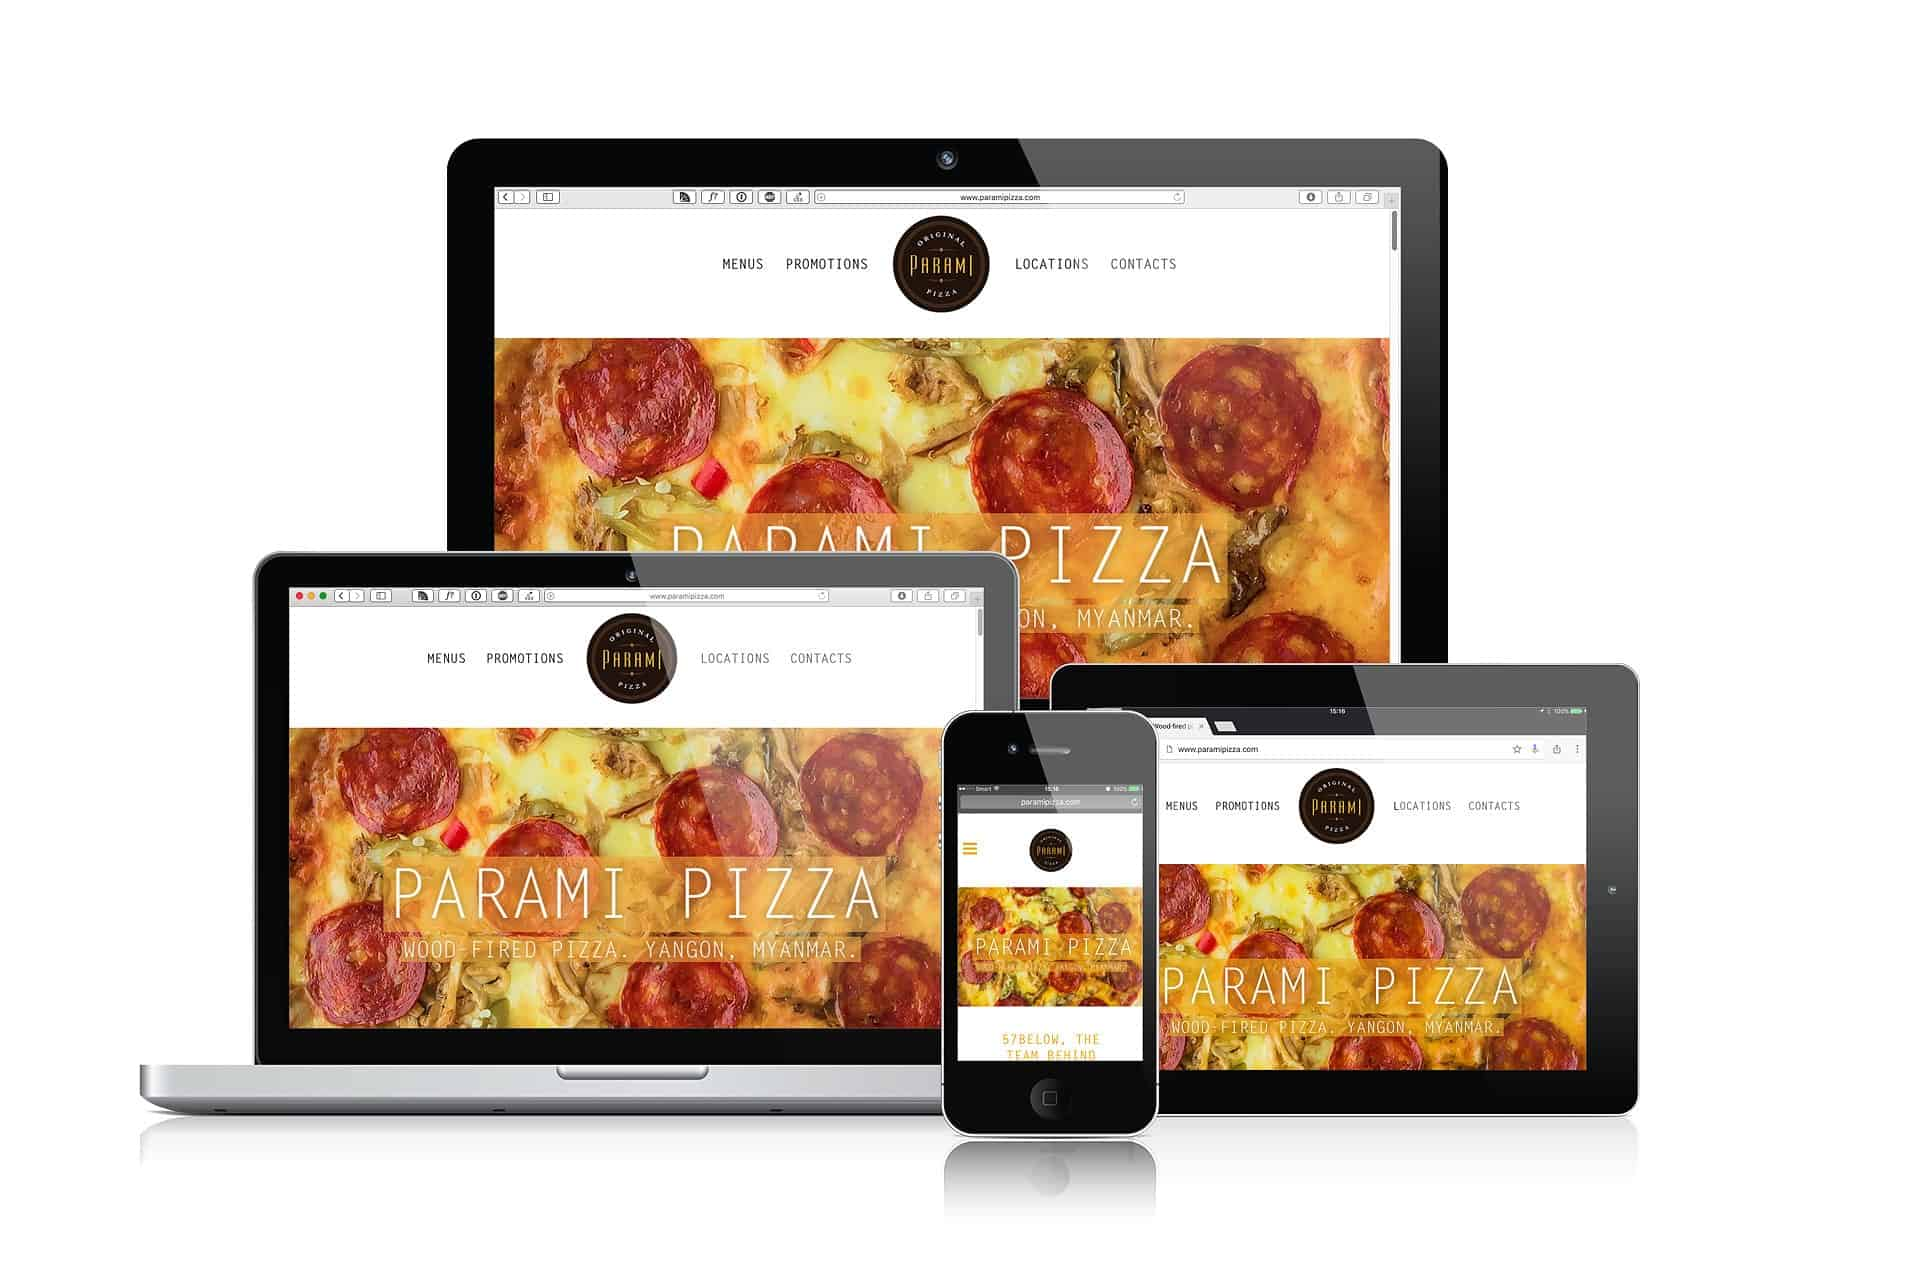 Parami Pizza, Myanmar (Burma) Website. Web Design & Development by Grantourismo Media, a Full Service Digital Media Agency.